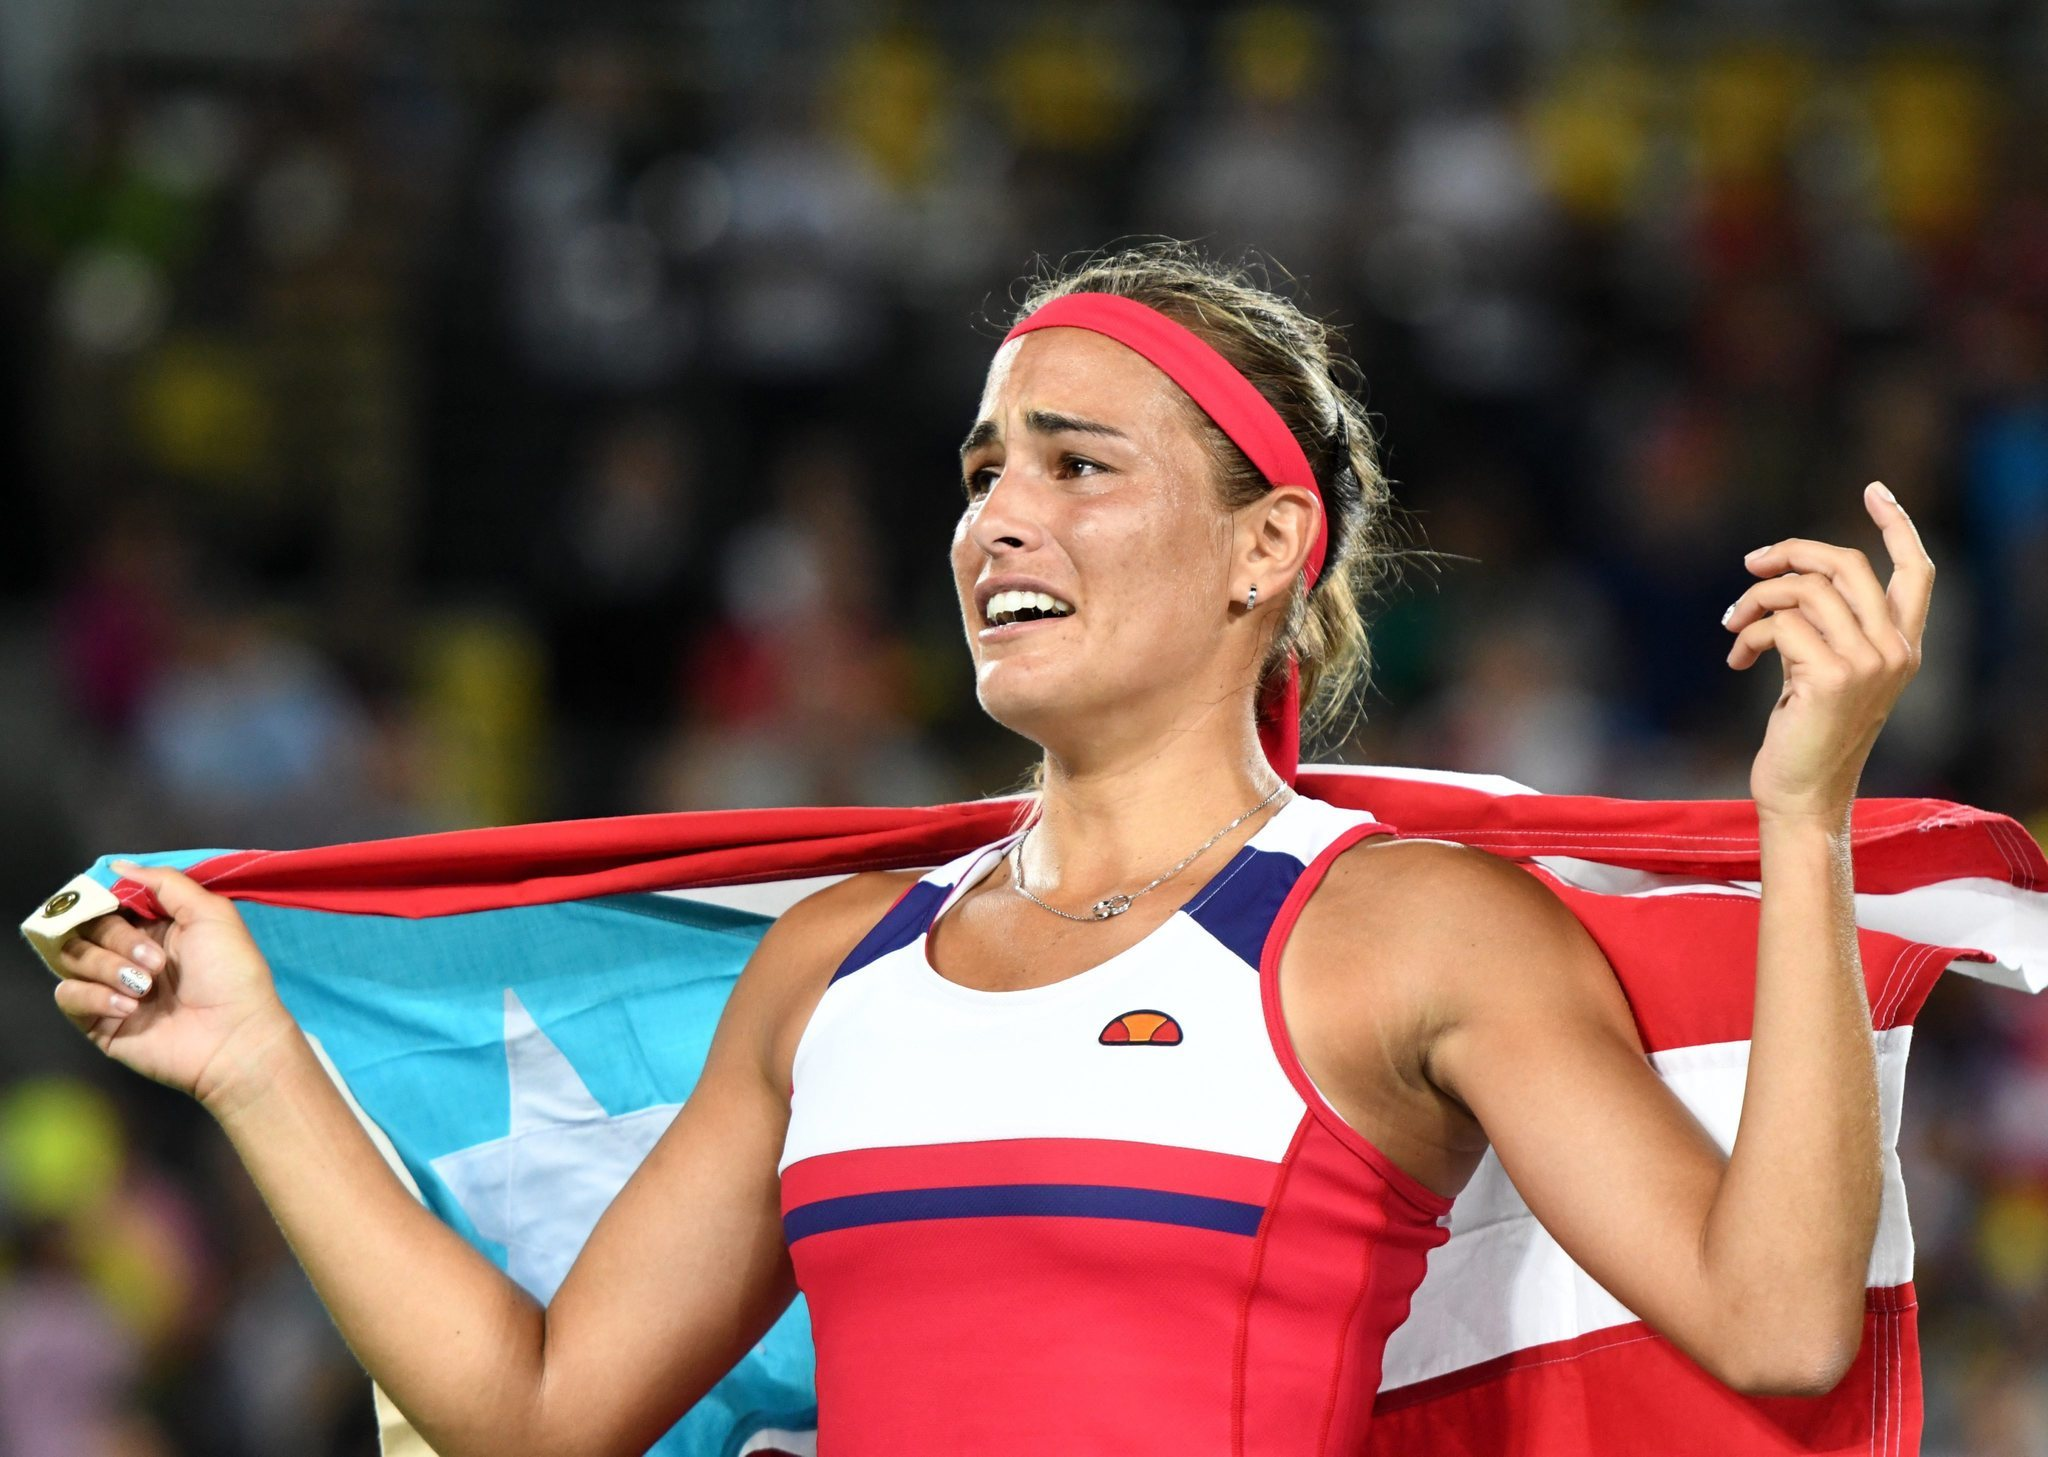 MONICA PUIG IS NOW THE GOLD STANDARD FOR PUERTO RICO